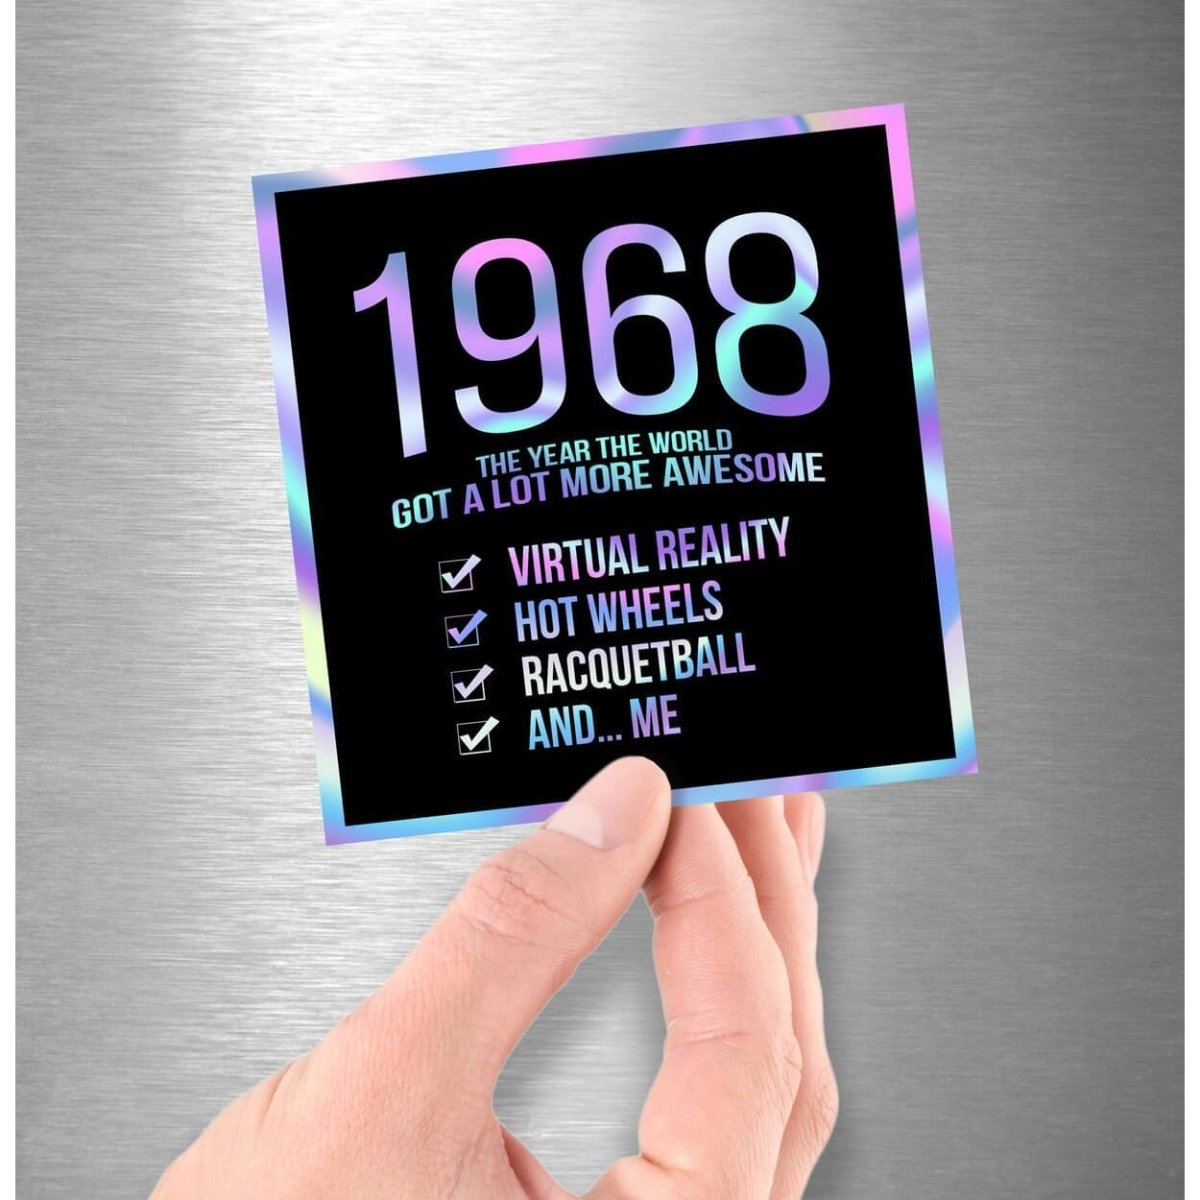 1968! Hologram Birth Year Sticker - Dan Pearce Sticker Shop